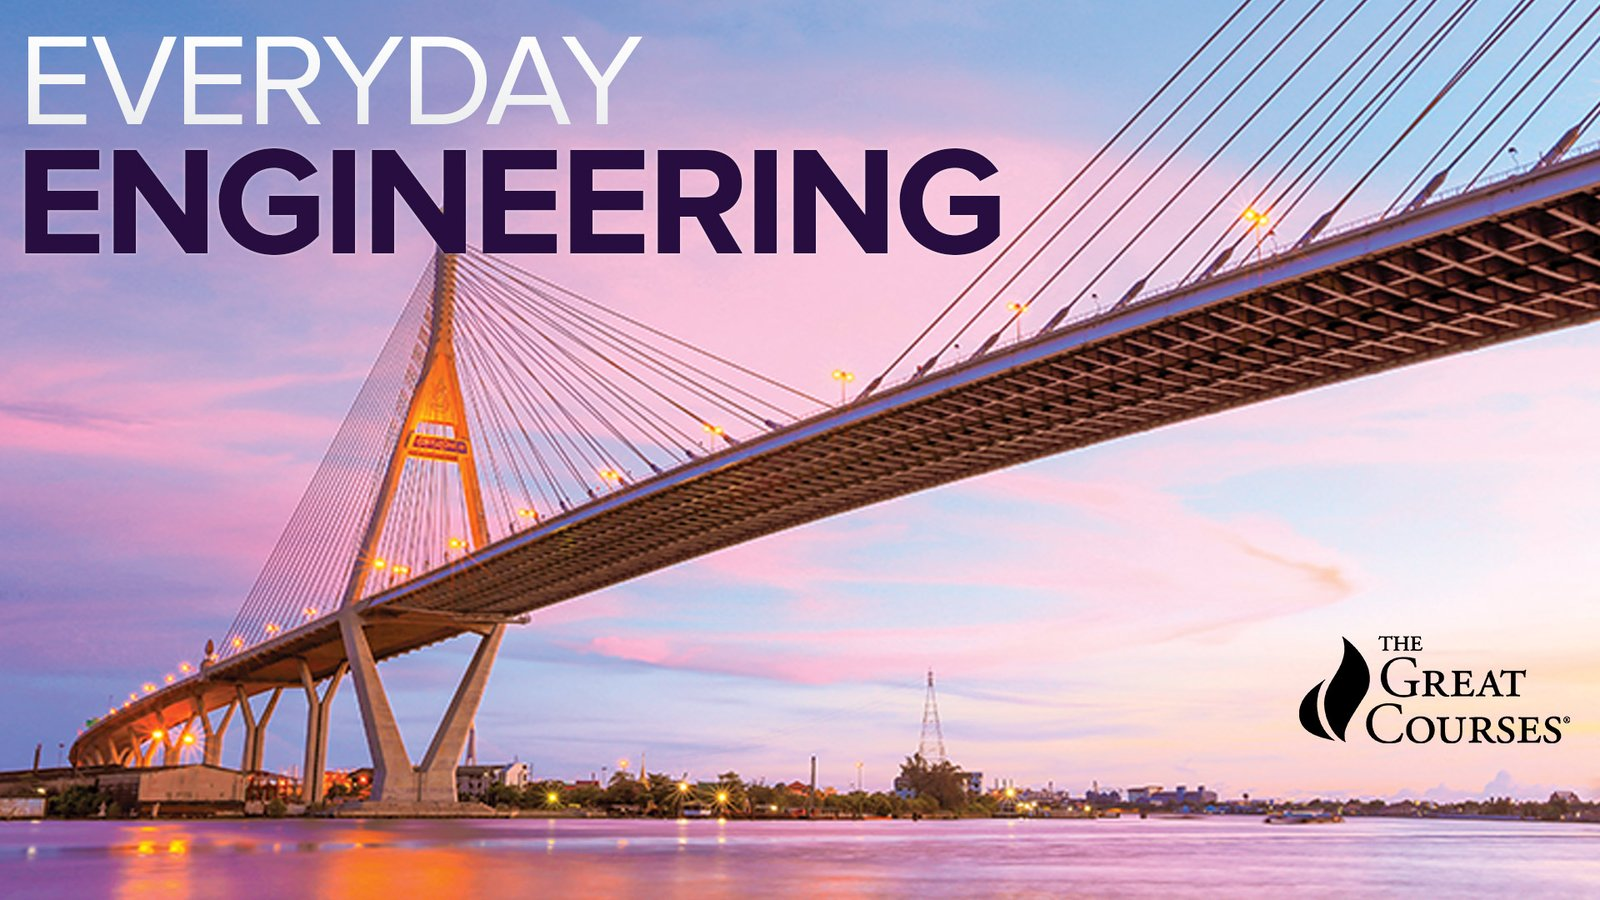 Everyday Engineering - Understanding the Marvels of Daily Life